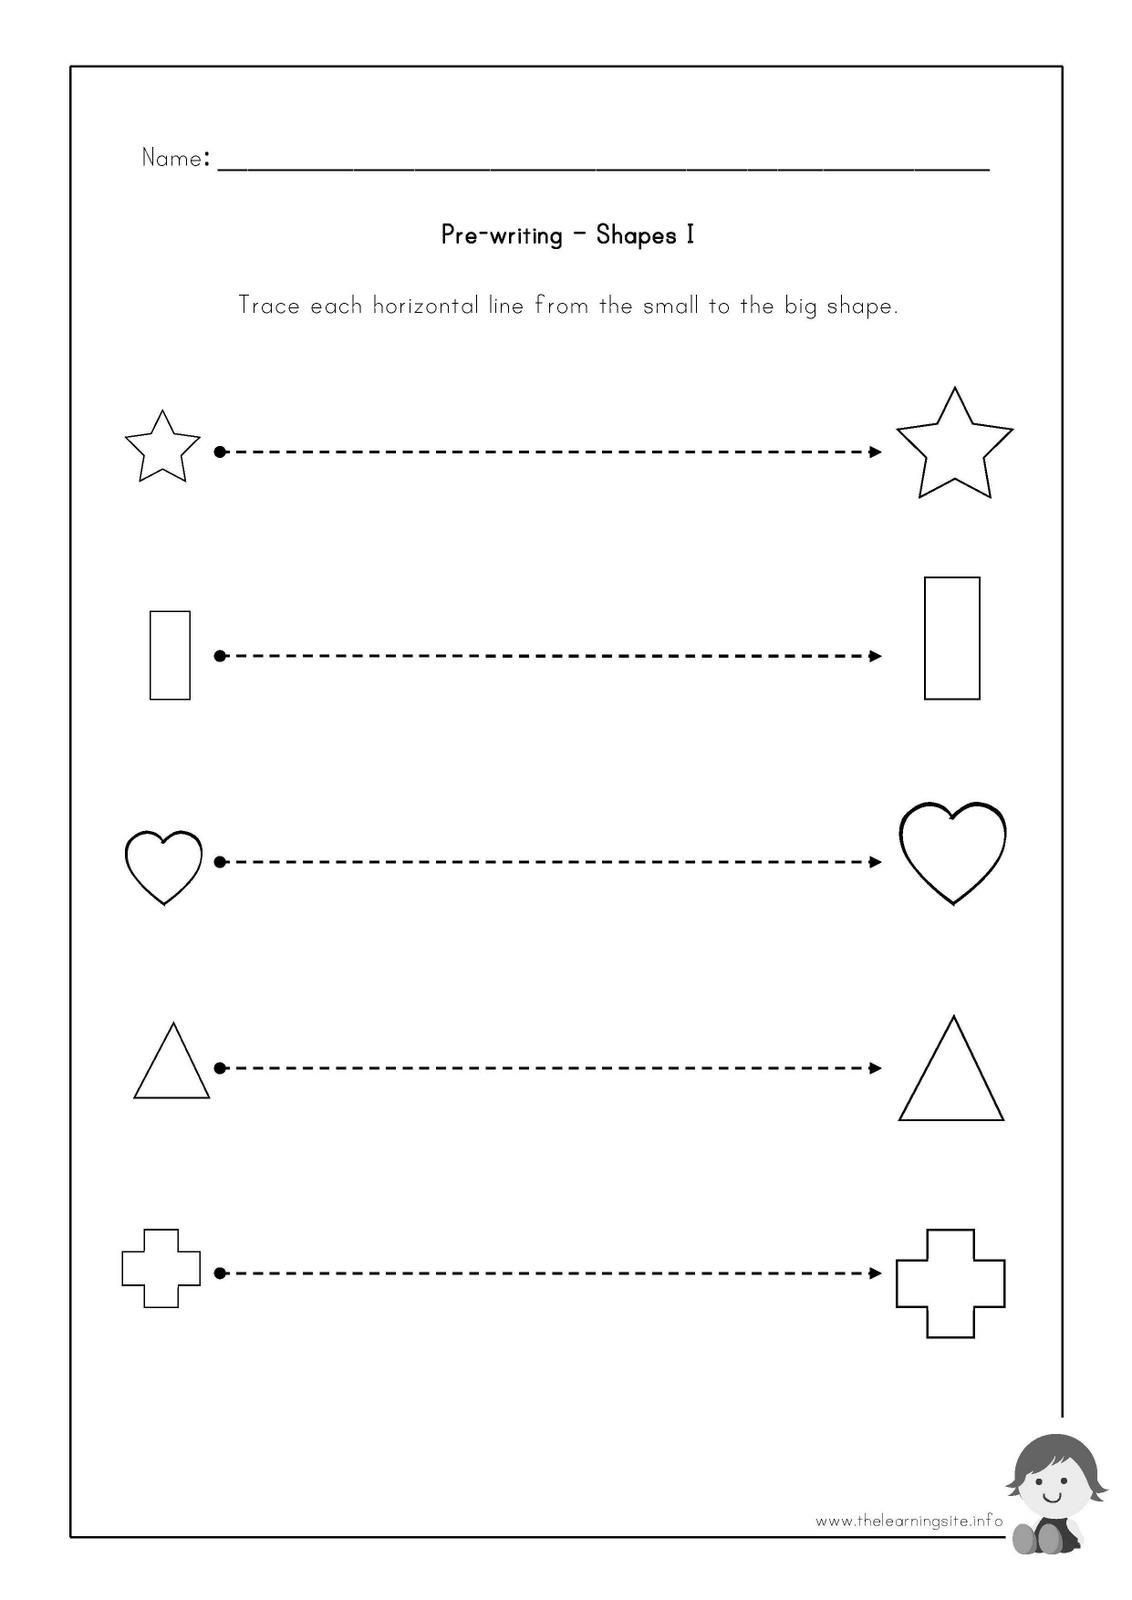 Pre Writing Shapes Worksheets The Learning Site Pre